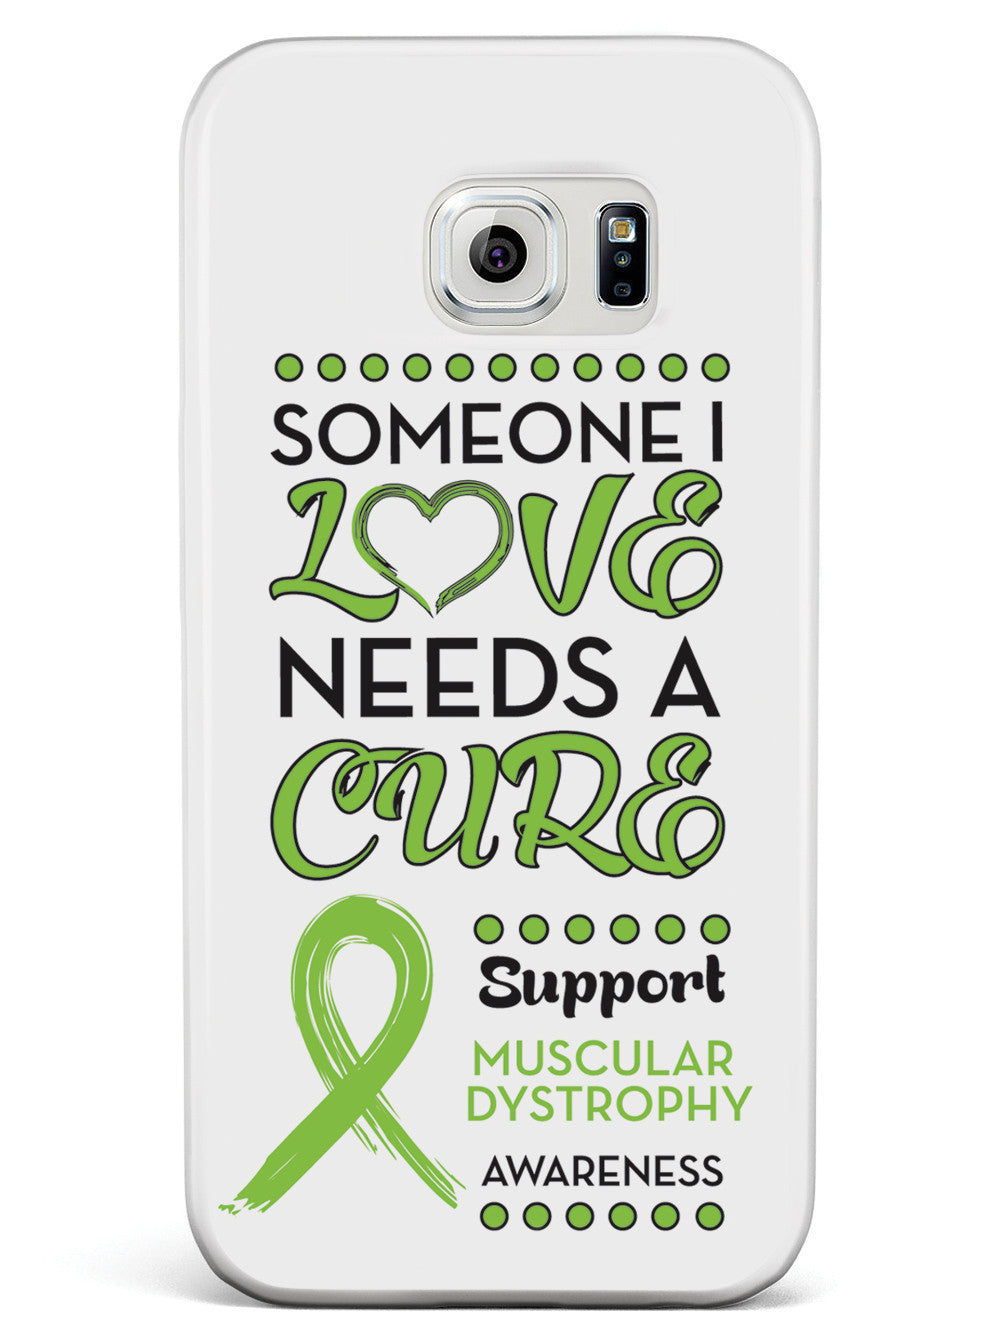 Someone I Love - Muscular Dystrophy Awareness Case